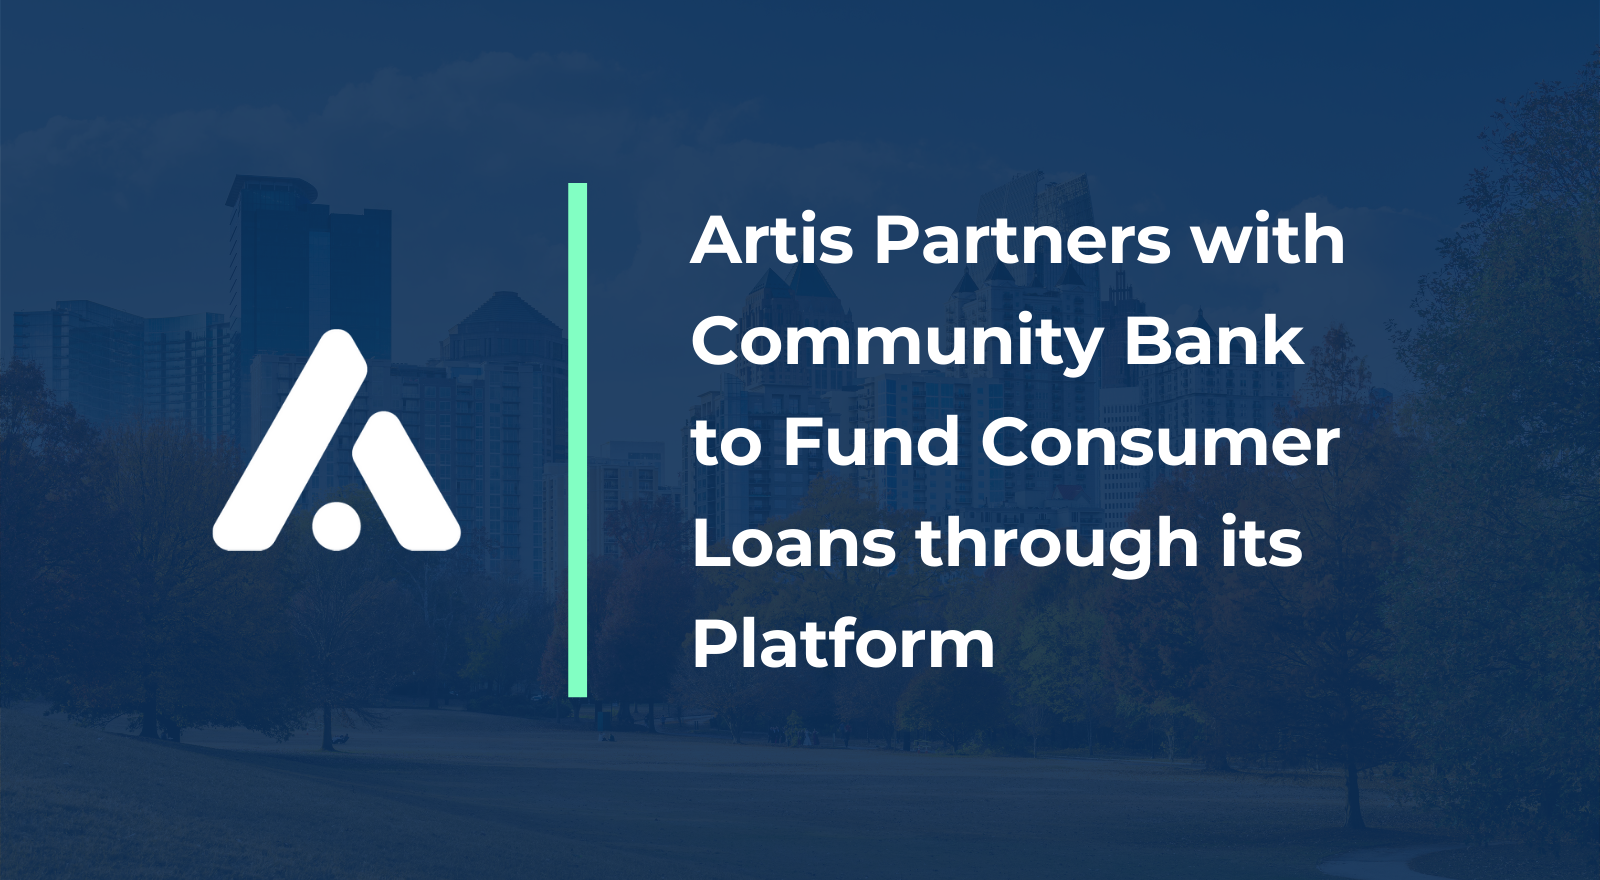 Artis Partners with Community Bank to Fund Consumer Loans through its Platform